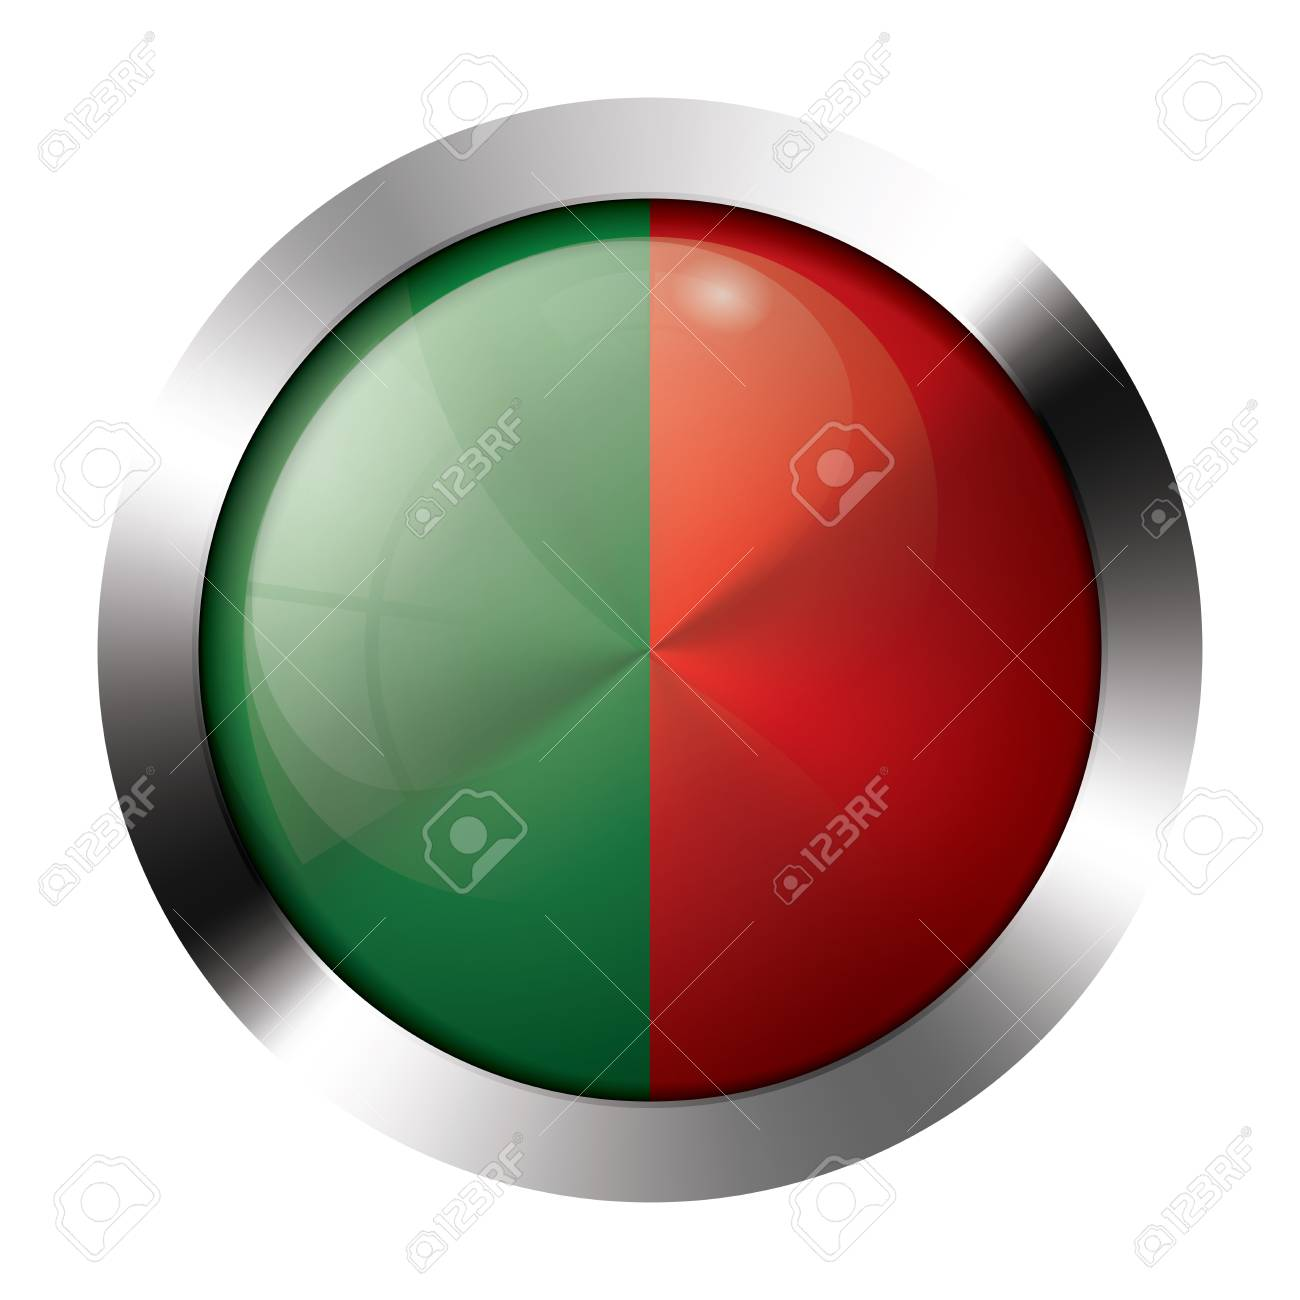 Round shiny metal button with flag of portugal europe. Stock Vector - 15704538